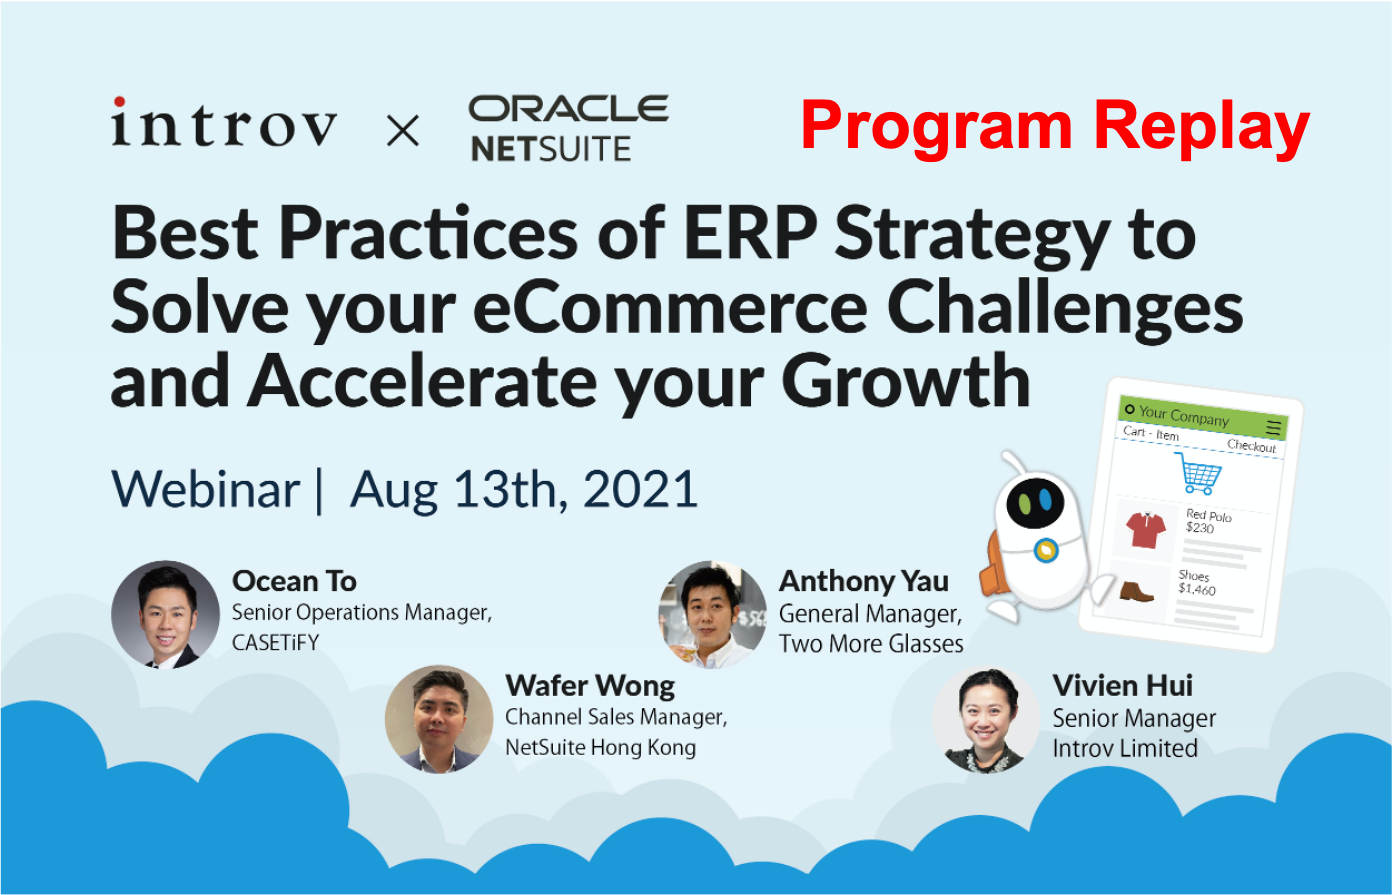 Webinar: Best Practices of ERP Strategy to Solve your eCommerce Challenges and Accelerate your Growth (August 13th, 2021)